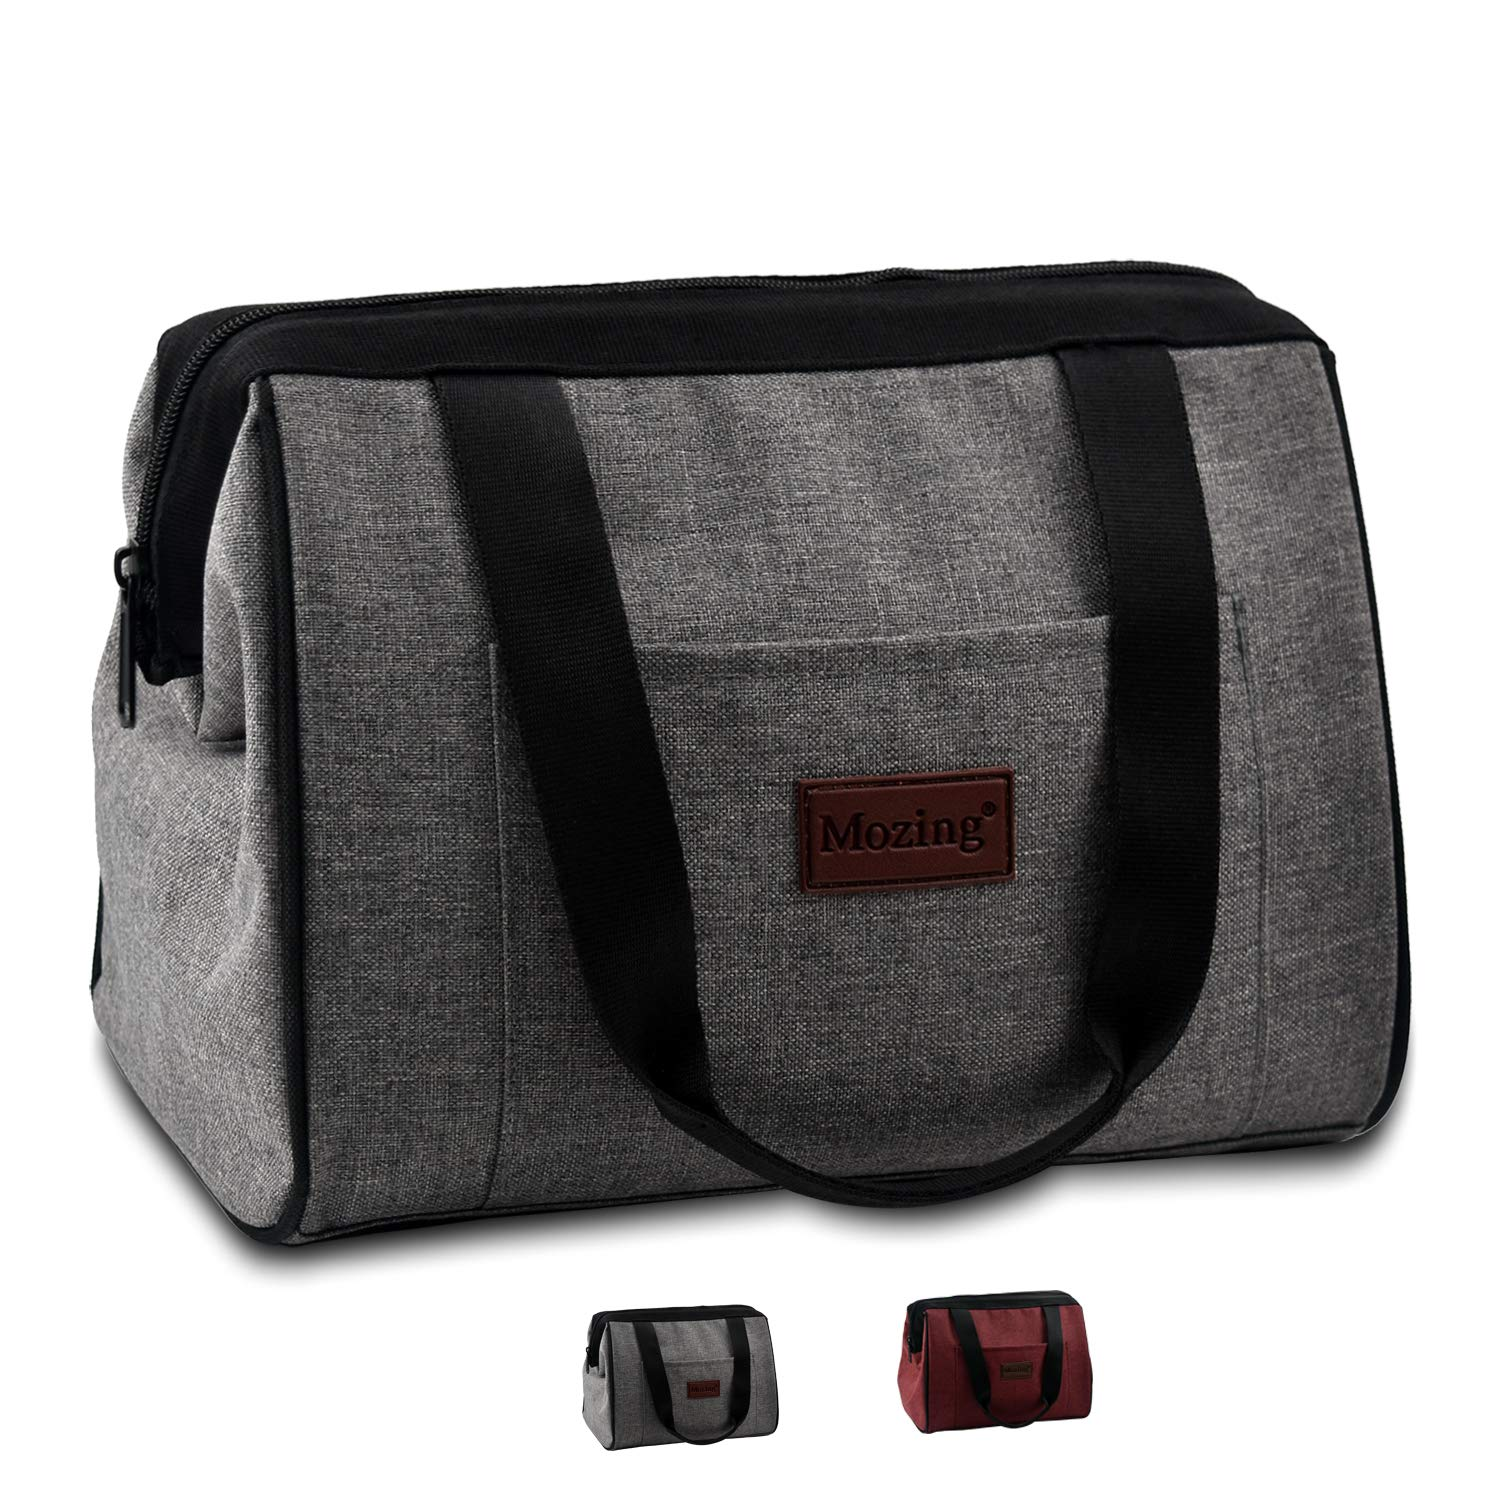 50d1ba10c4f7 Mozing Lunch Box,Insulated Lunch Bag for Women Large Reusable Lunch Tote  Bags for Adults Kids, Gray